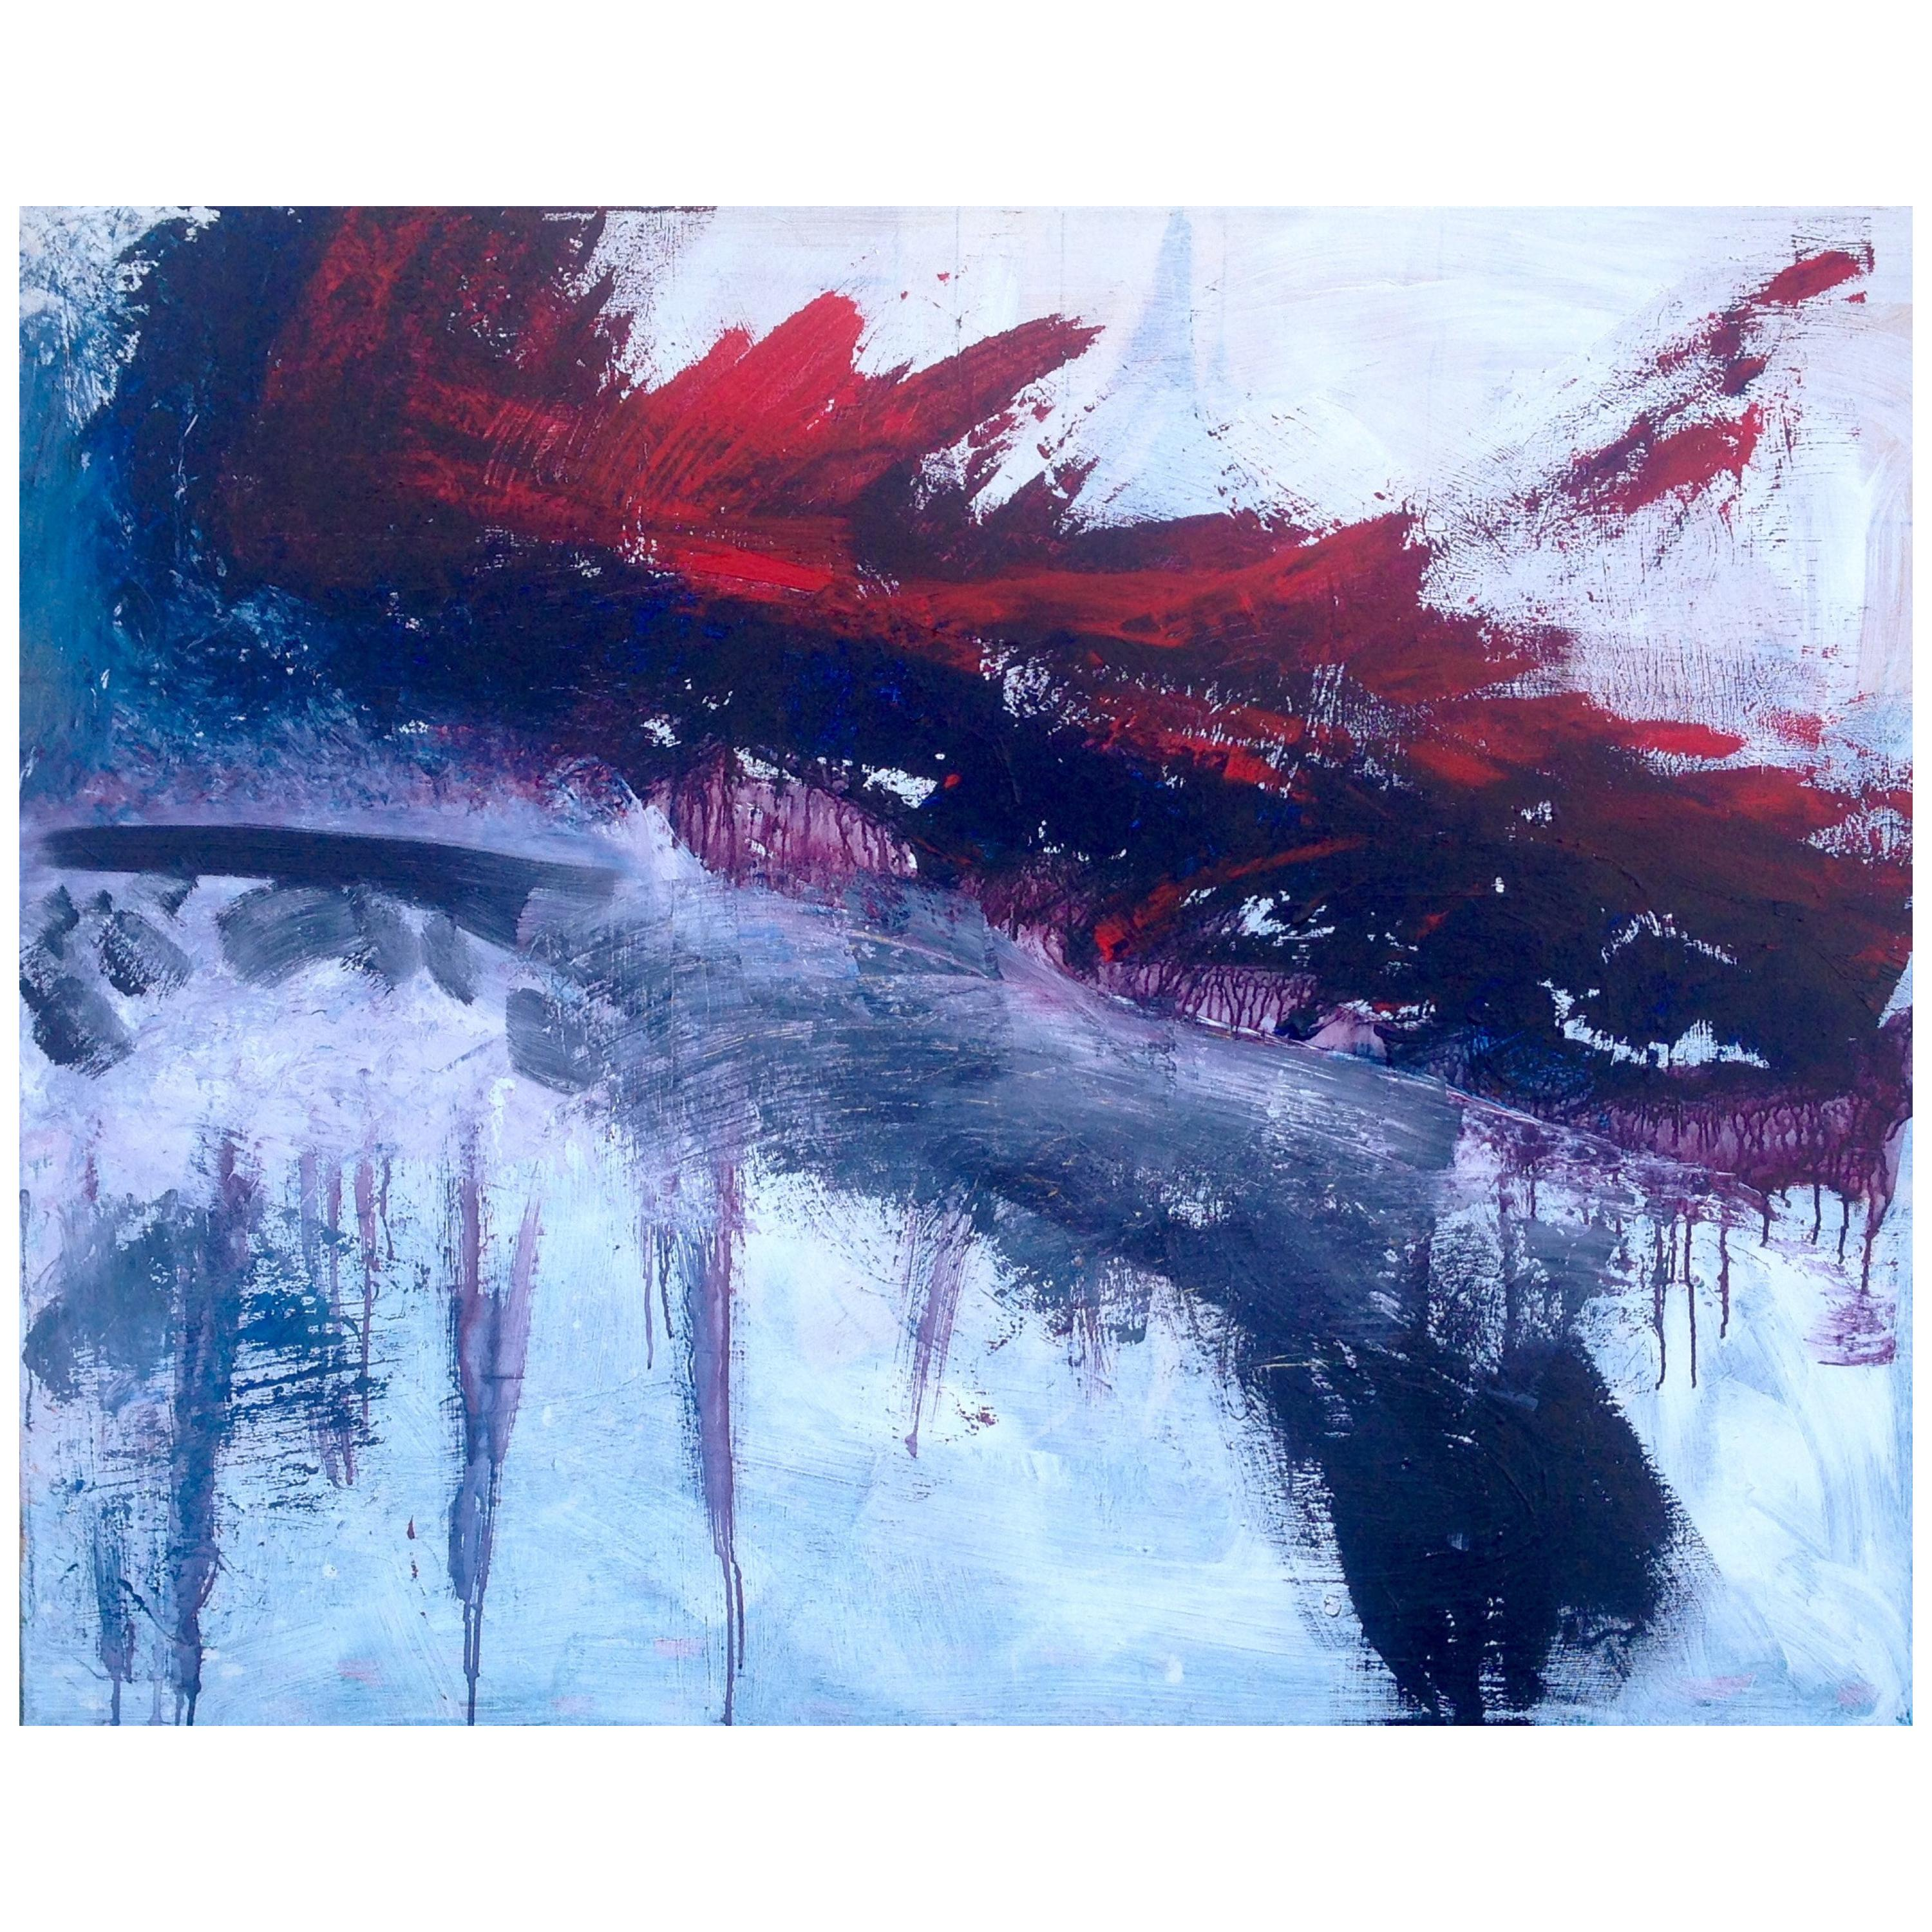 Large Abstract Expressionist Painting by American Artist, Suzanne Clune, 2016